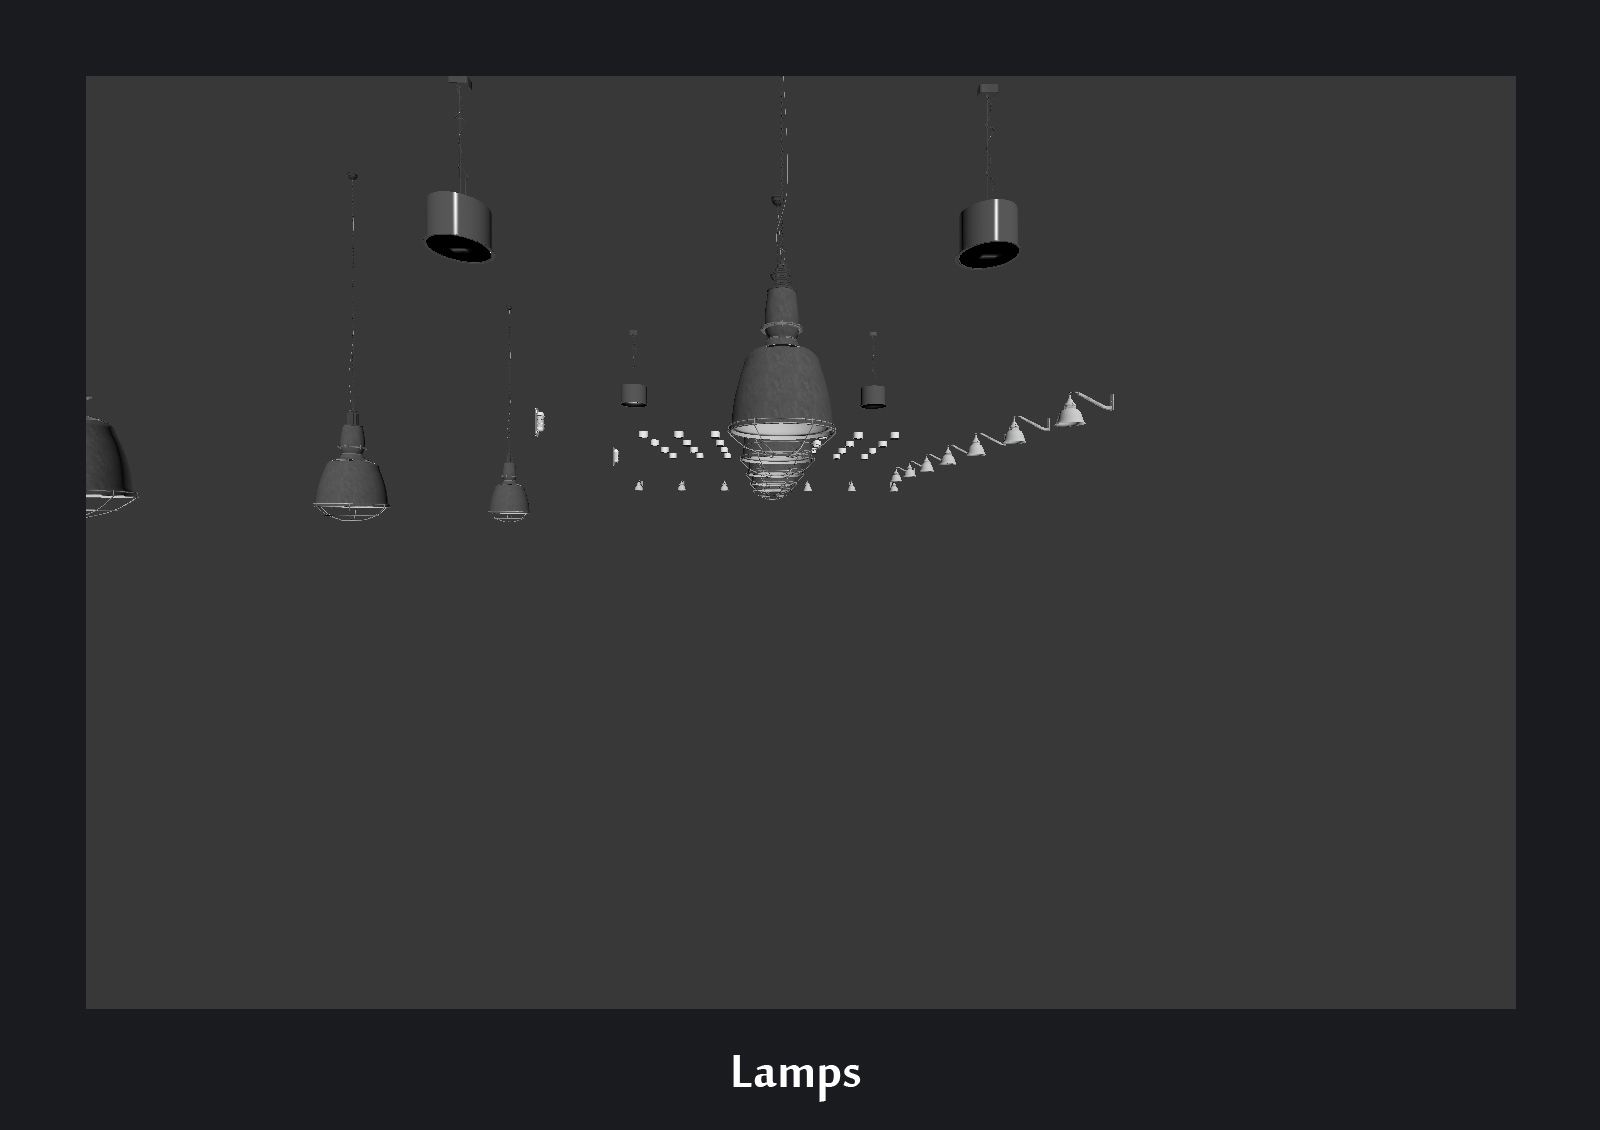 006_Lamps_evermotion_042.jpg